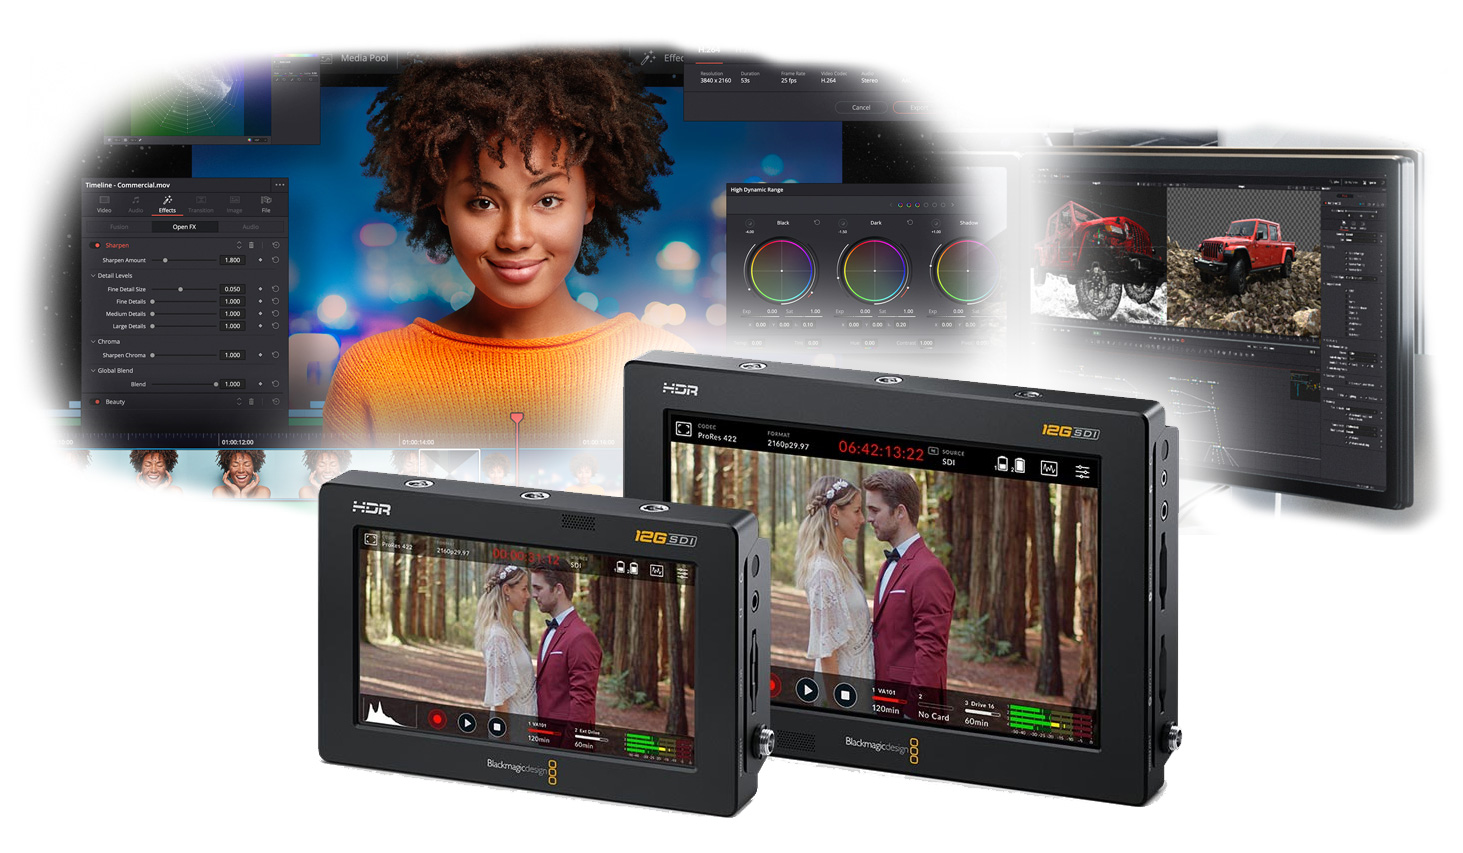 Updates for Blackmagic Video Assist (3.5) , as well as DaVinci Resolve and Fusion (17.3.2.)